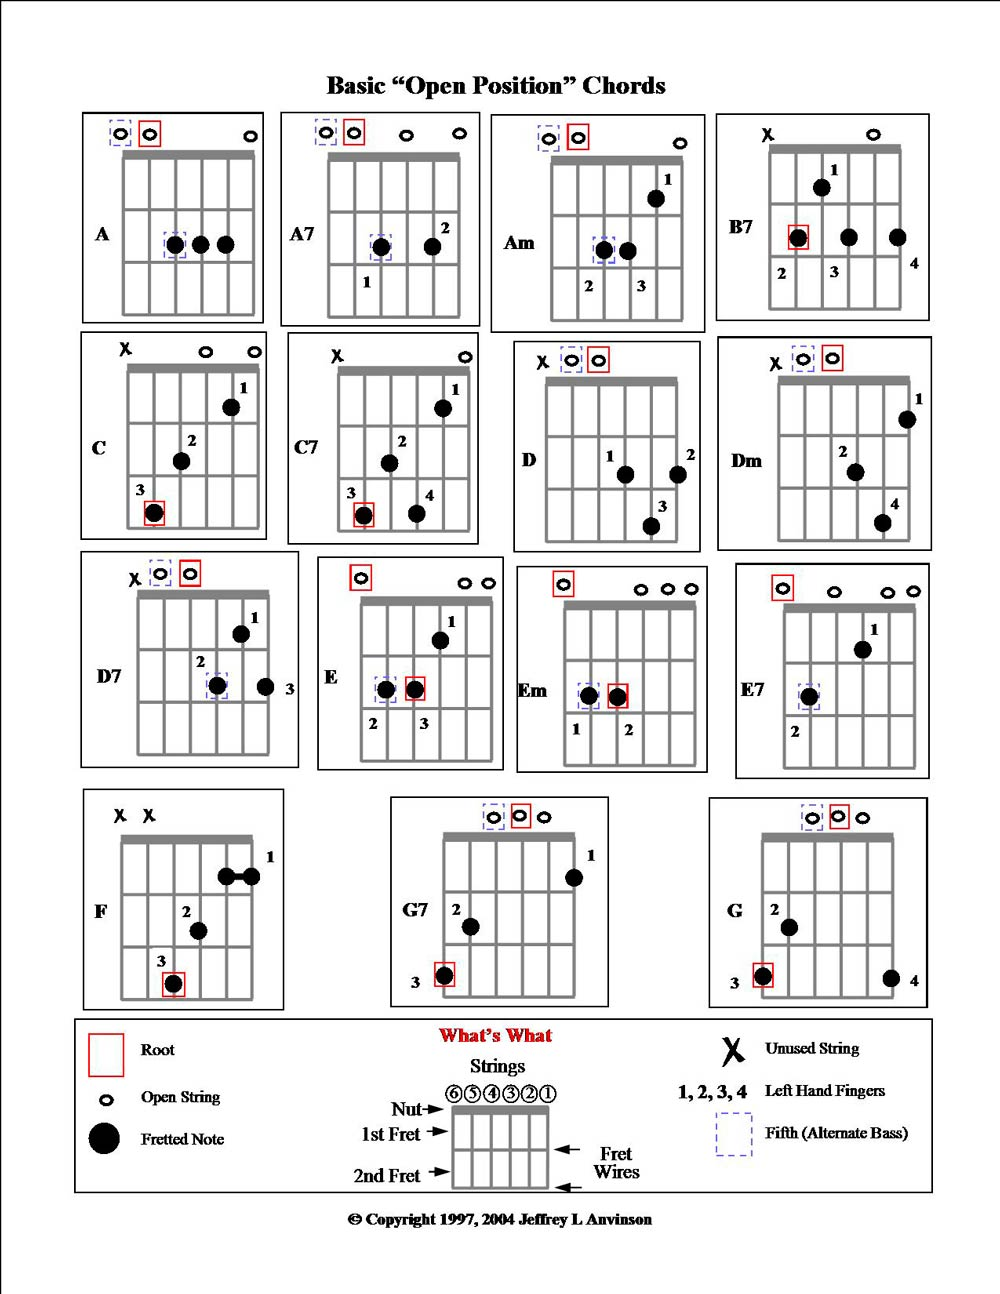 Jla Music Basic Open Position Chords For Guitar